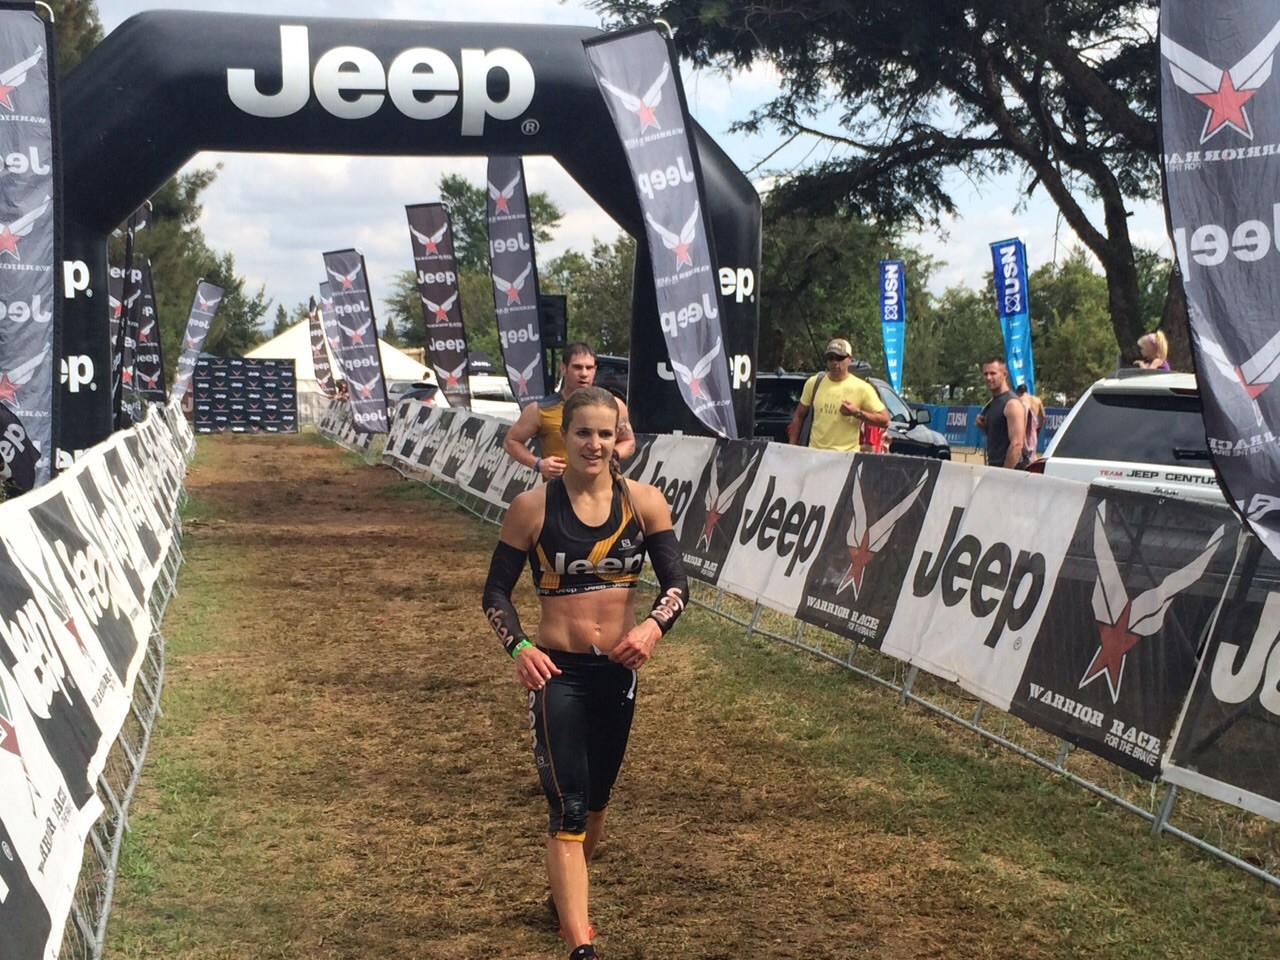 Jeep Team shines at Warrior Race#3